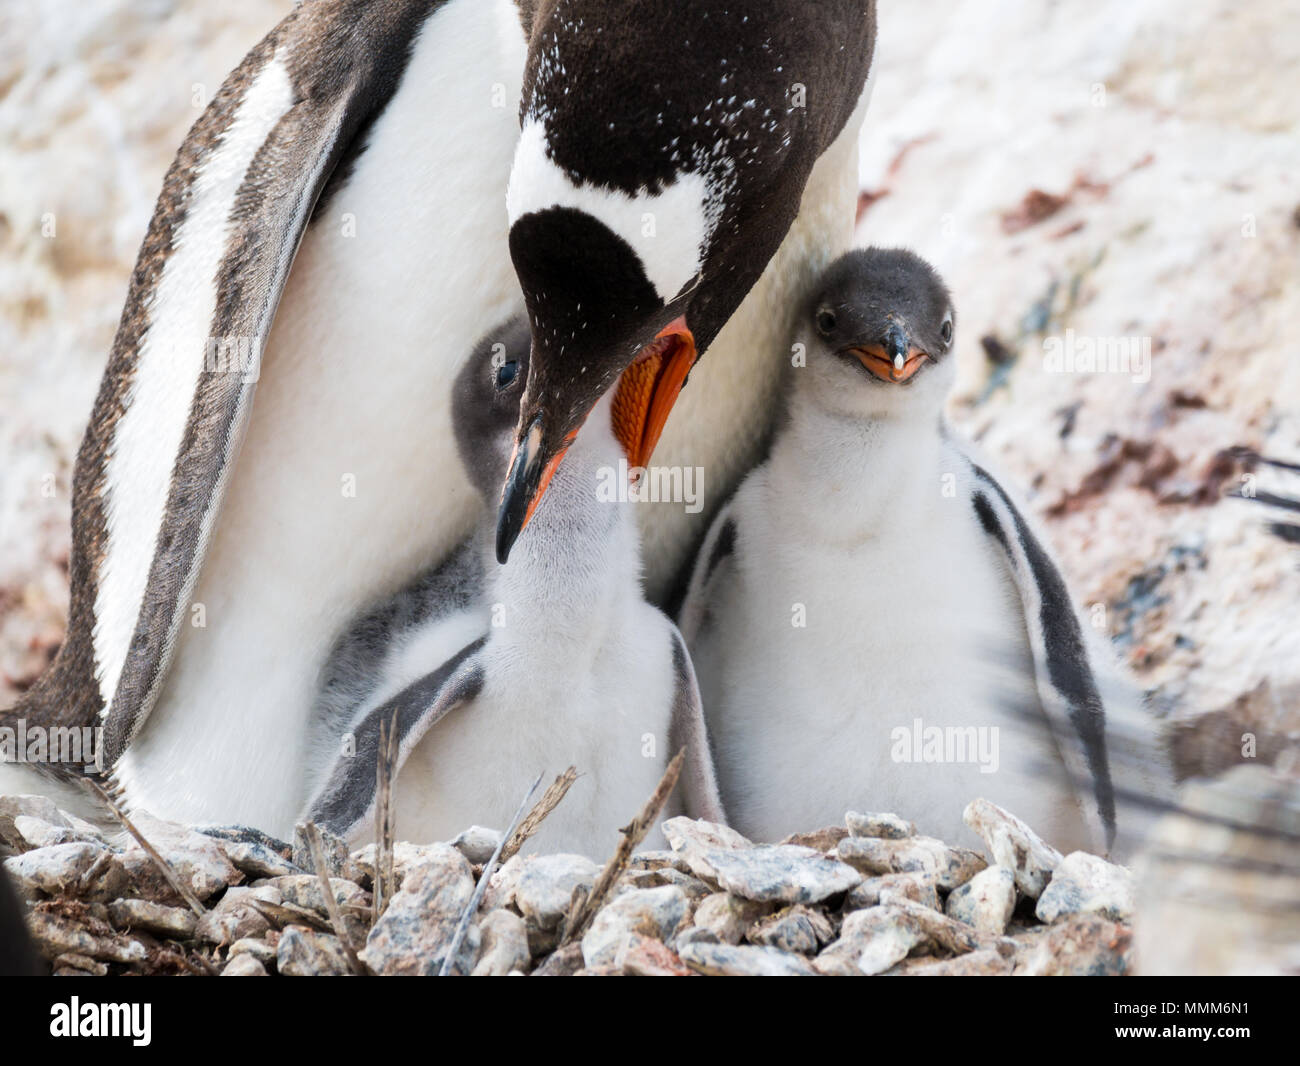 Gentoo penguin, Pygoscelis papua, mother feeding a hungry chick on nest in colony on Cuverville Island, Antarctic Peninsula, Antarctica Stock Photo